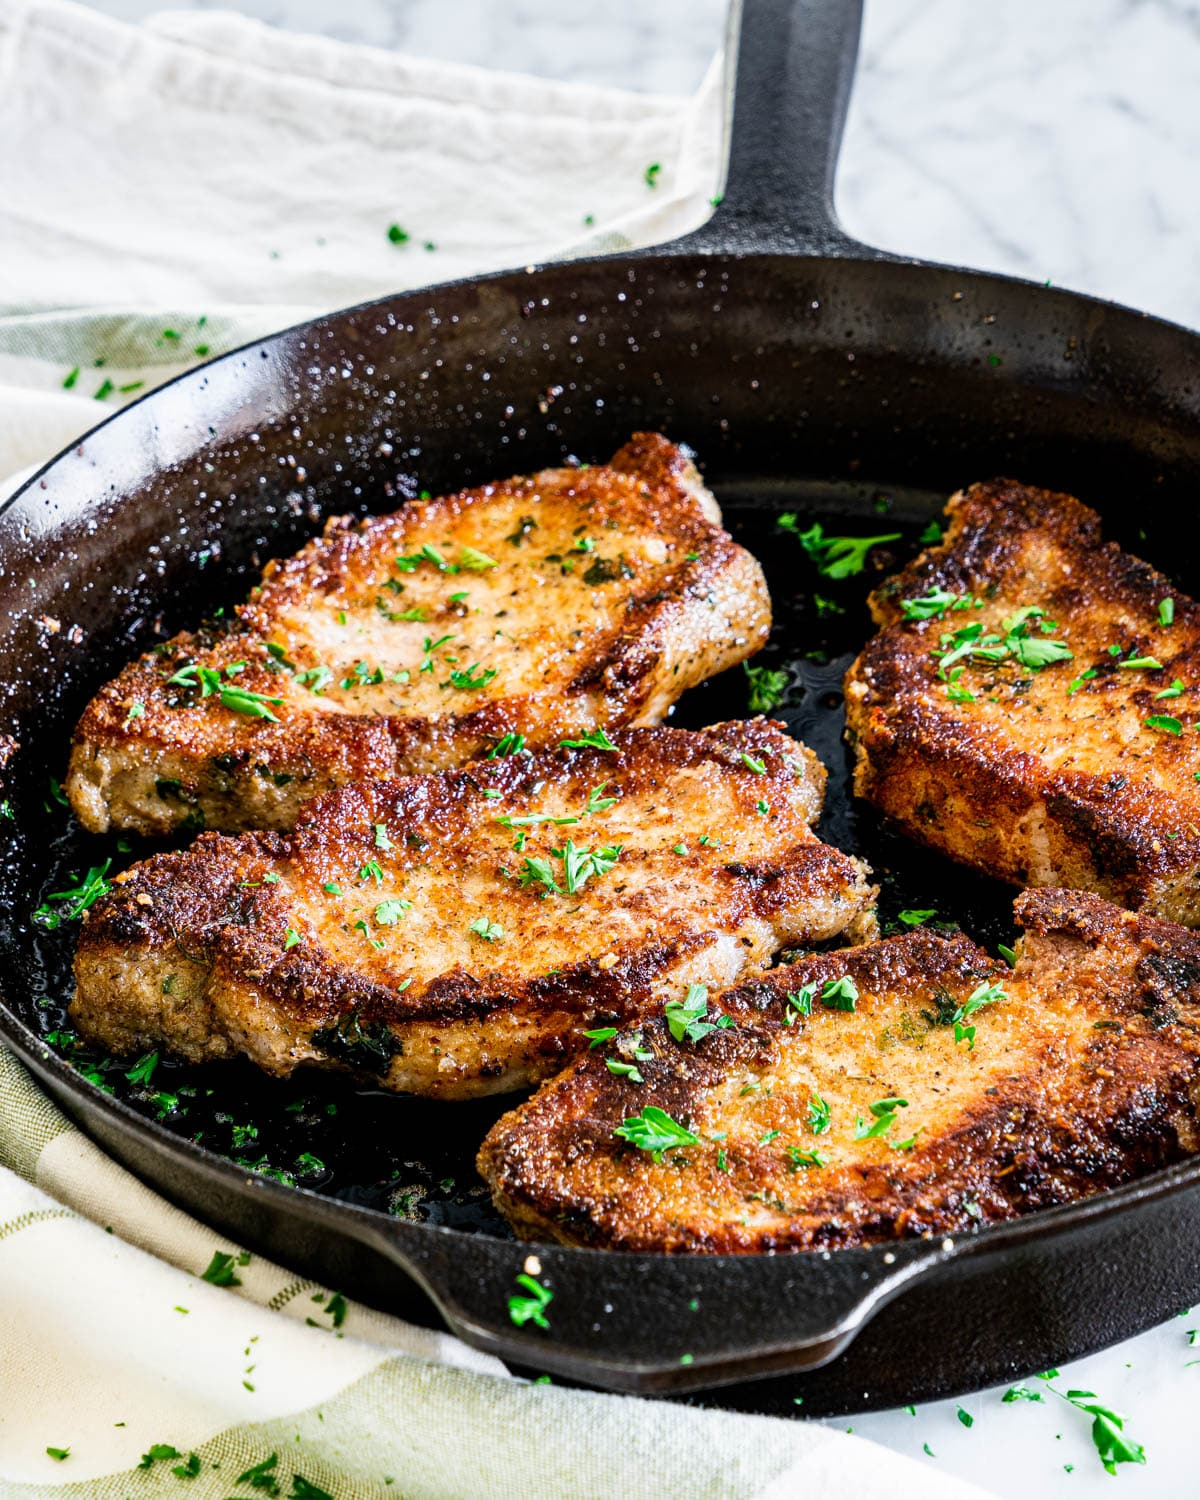 a skillet with 4 Italian Breaded Pork Chops and garnished with parsly